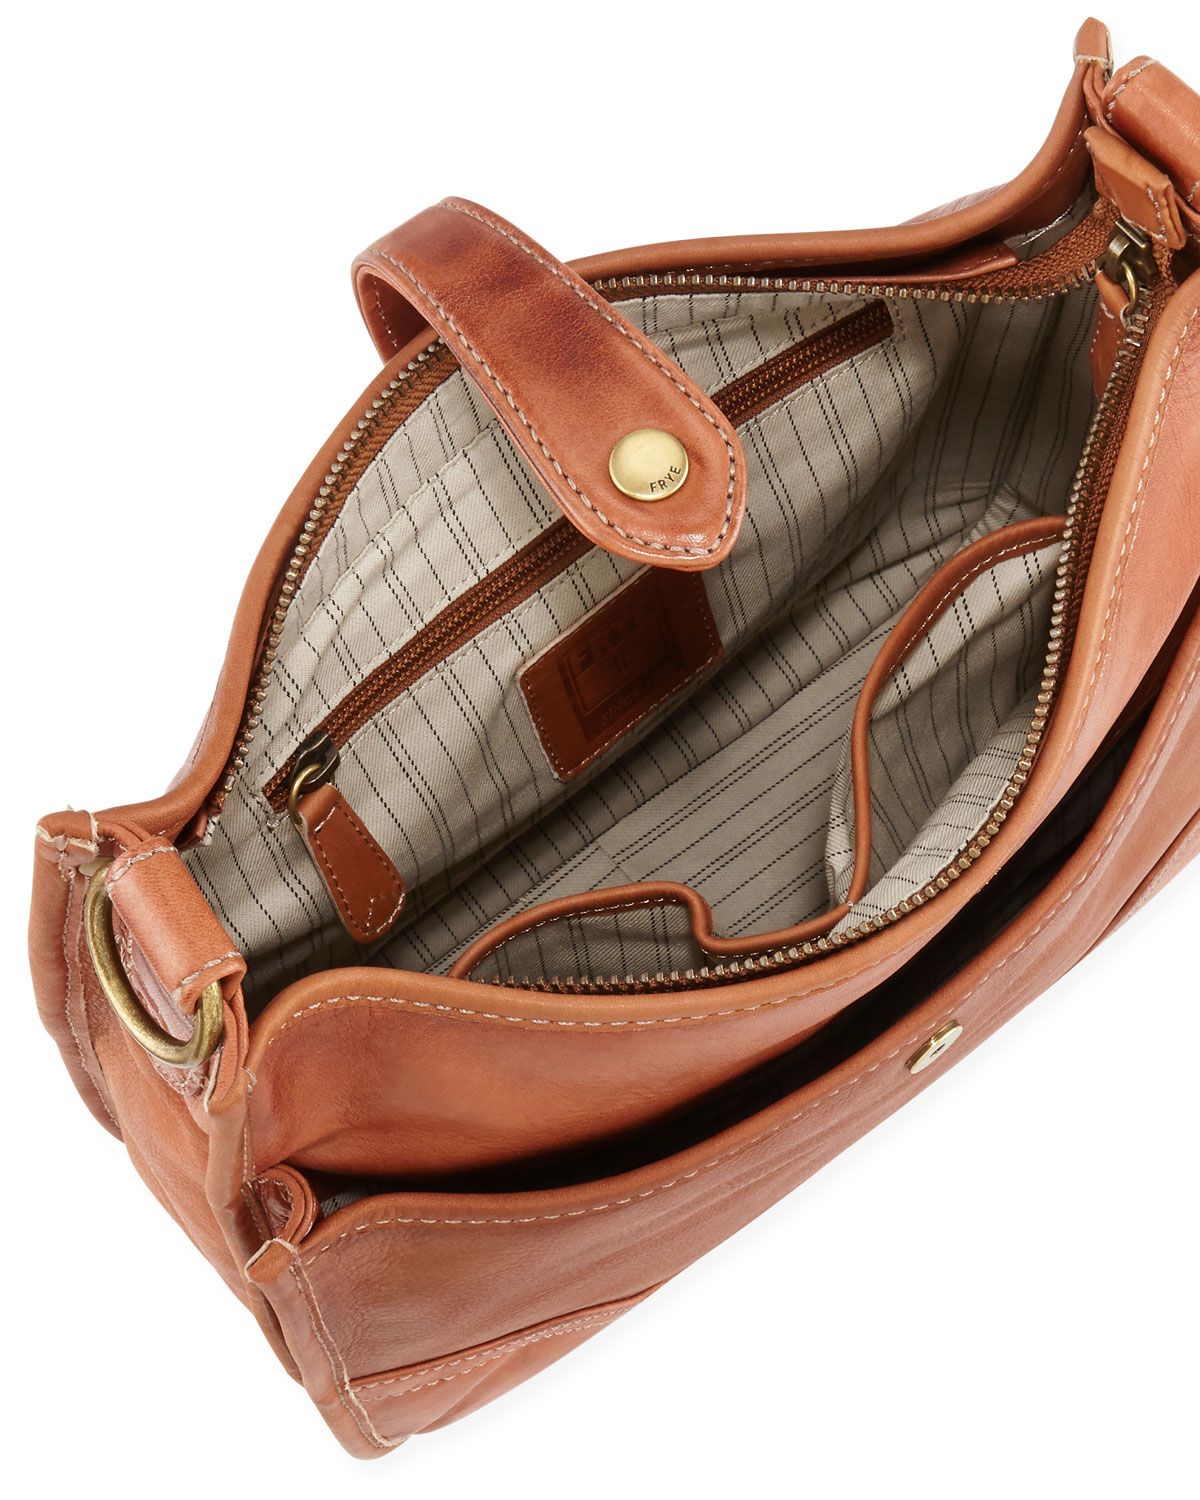 The satchel and saddle bags market is a popular product and manufacturers of the premium brands face heavy competition globally and they need to keep up to the demand and consumer preference of the global satchel and saddle bags market.